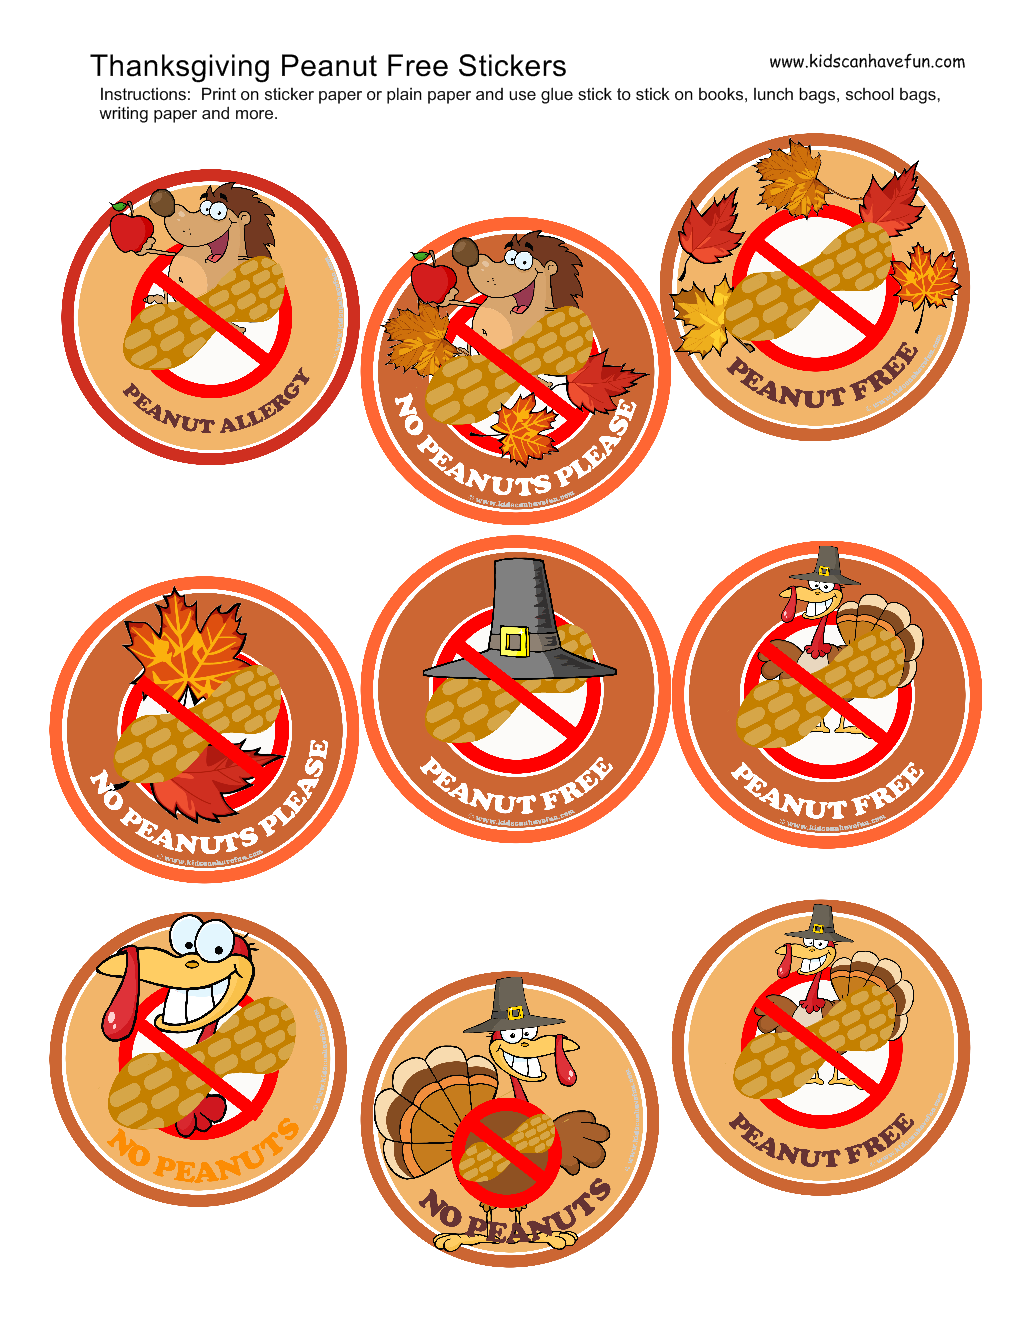 Printable Thanksgiving Peanut-Free Stickers | Allergy ...